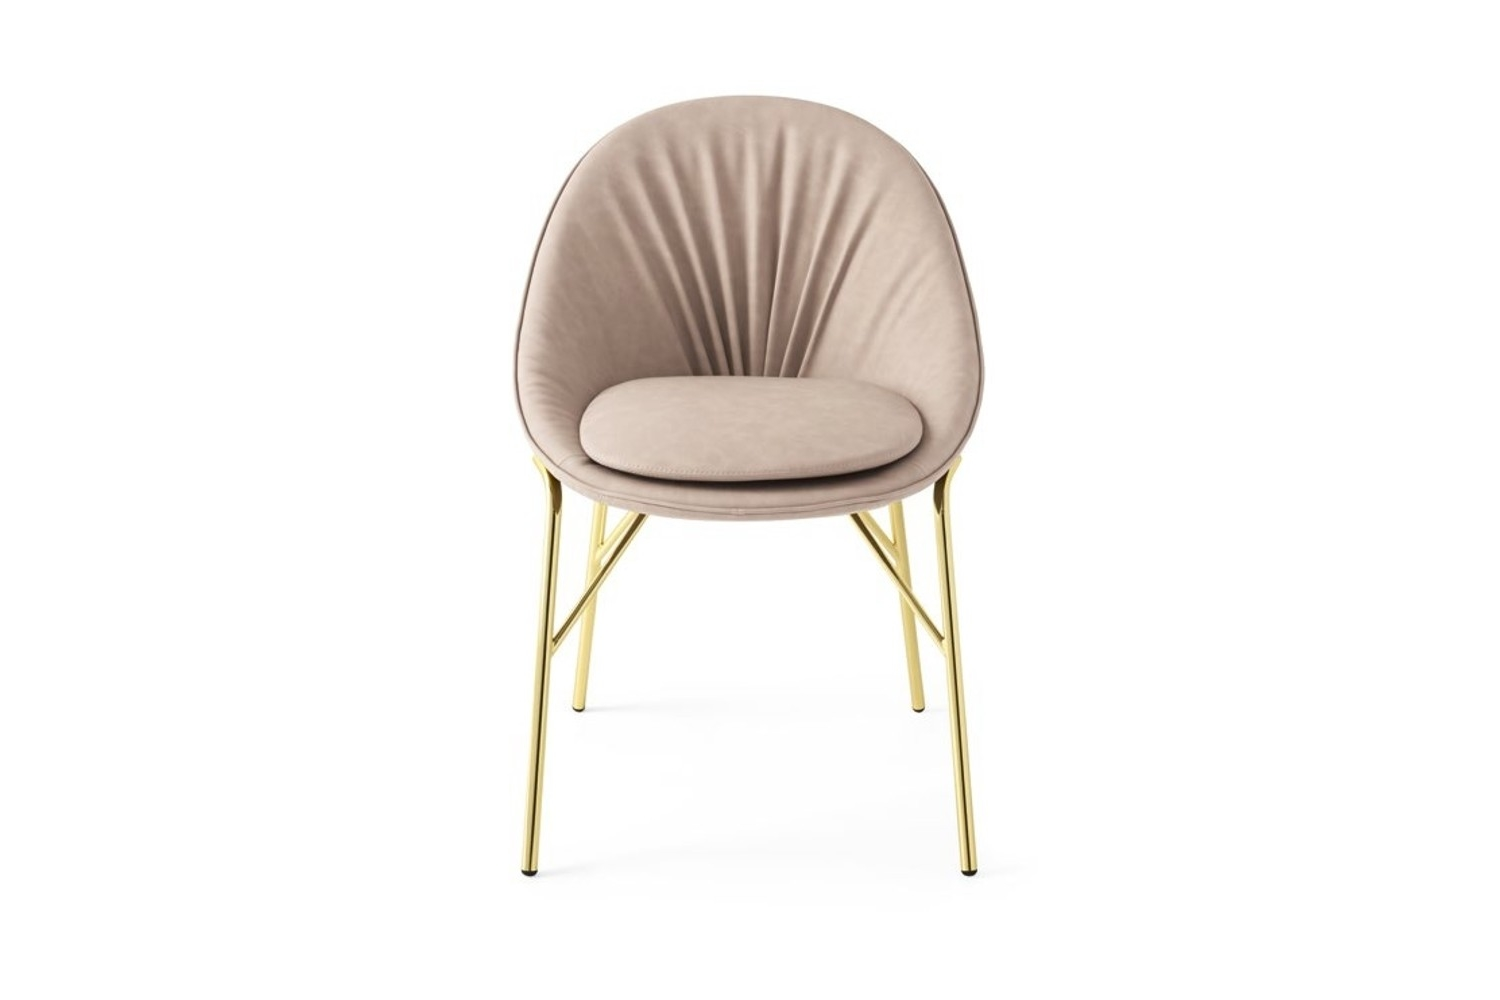 Lilly Dining Chair Taupe Leather with Polished brass legs Lilly Dining Chair Taupe Leather with Polished brass legs Lilly Dining Chair Taupe Leather with Polished brass legs